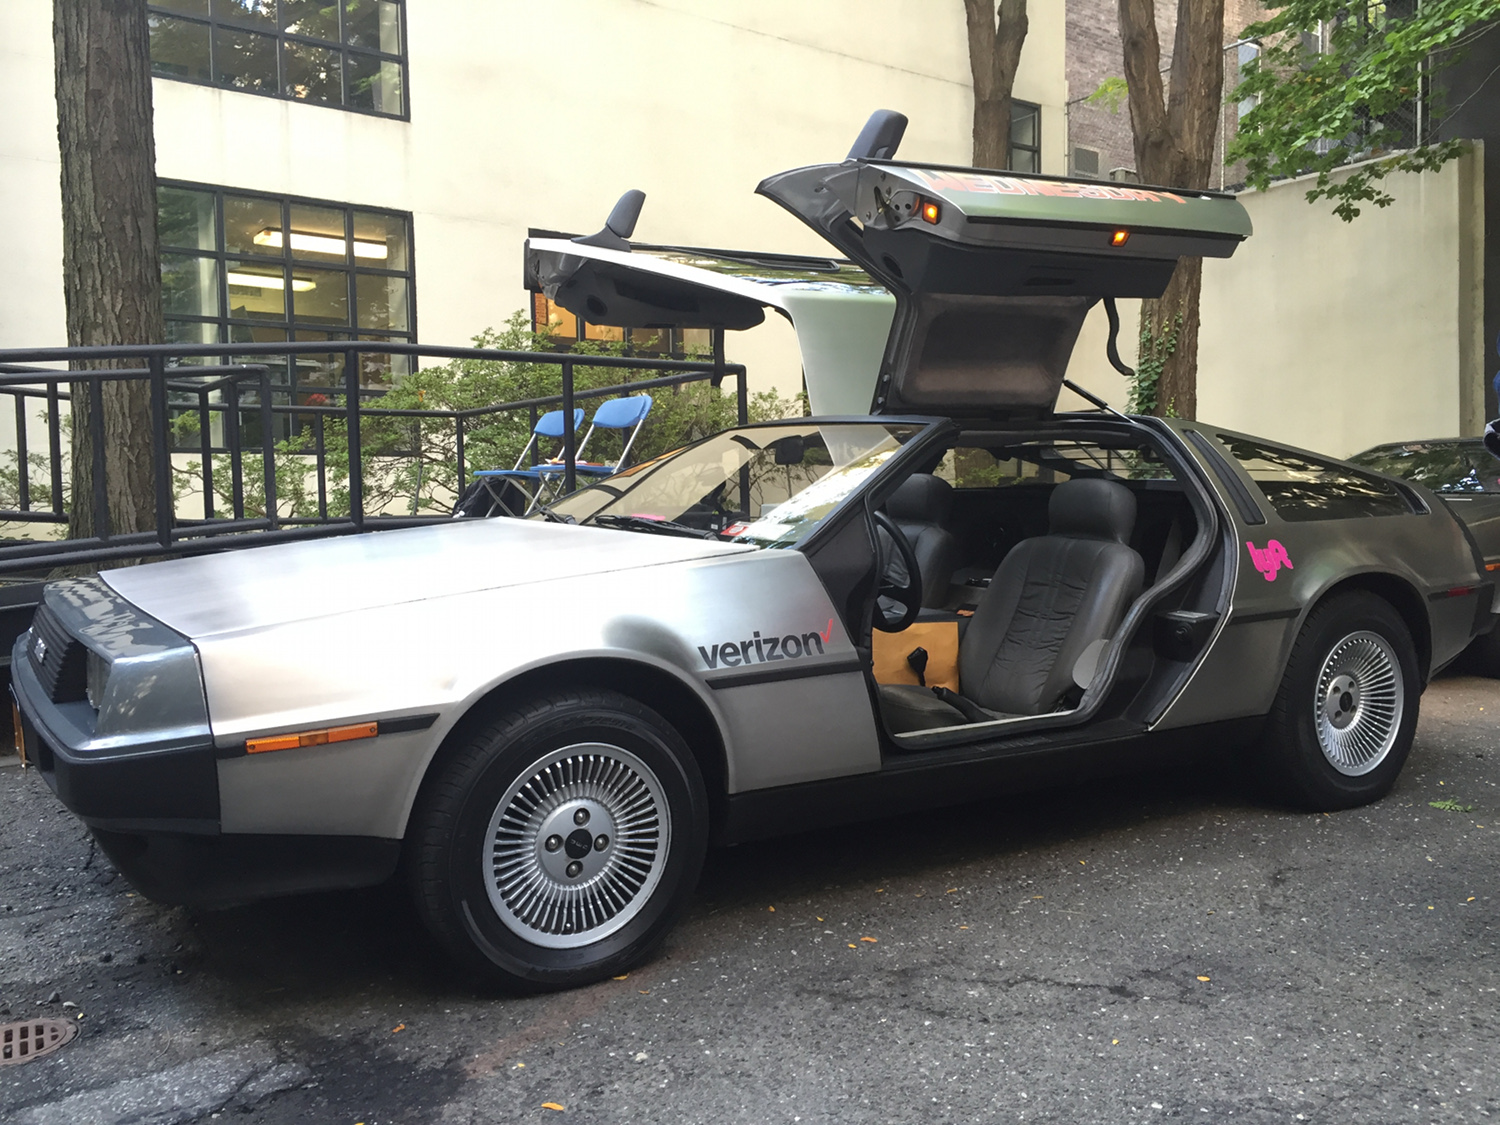 A DeLorean DMC-12, the same model that was turned into a time machine